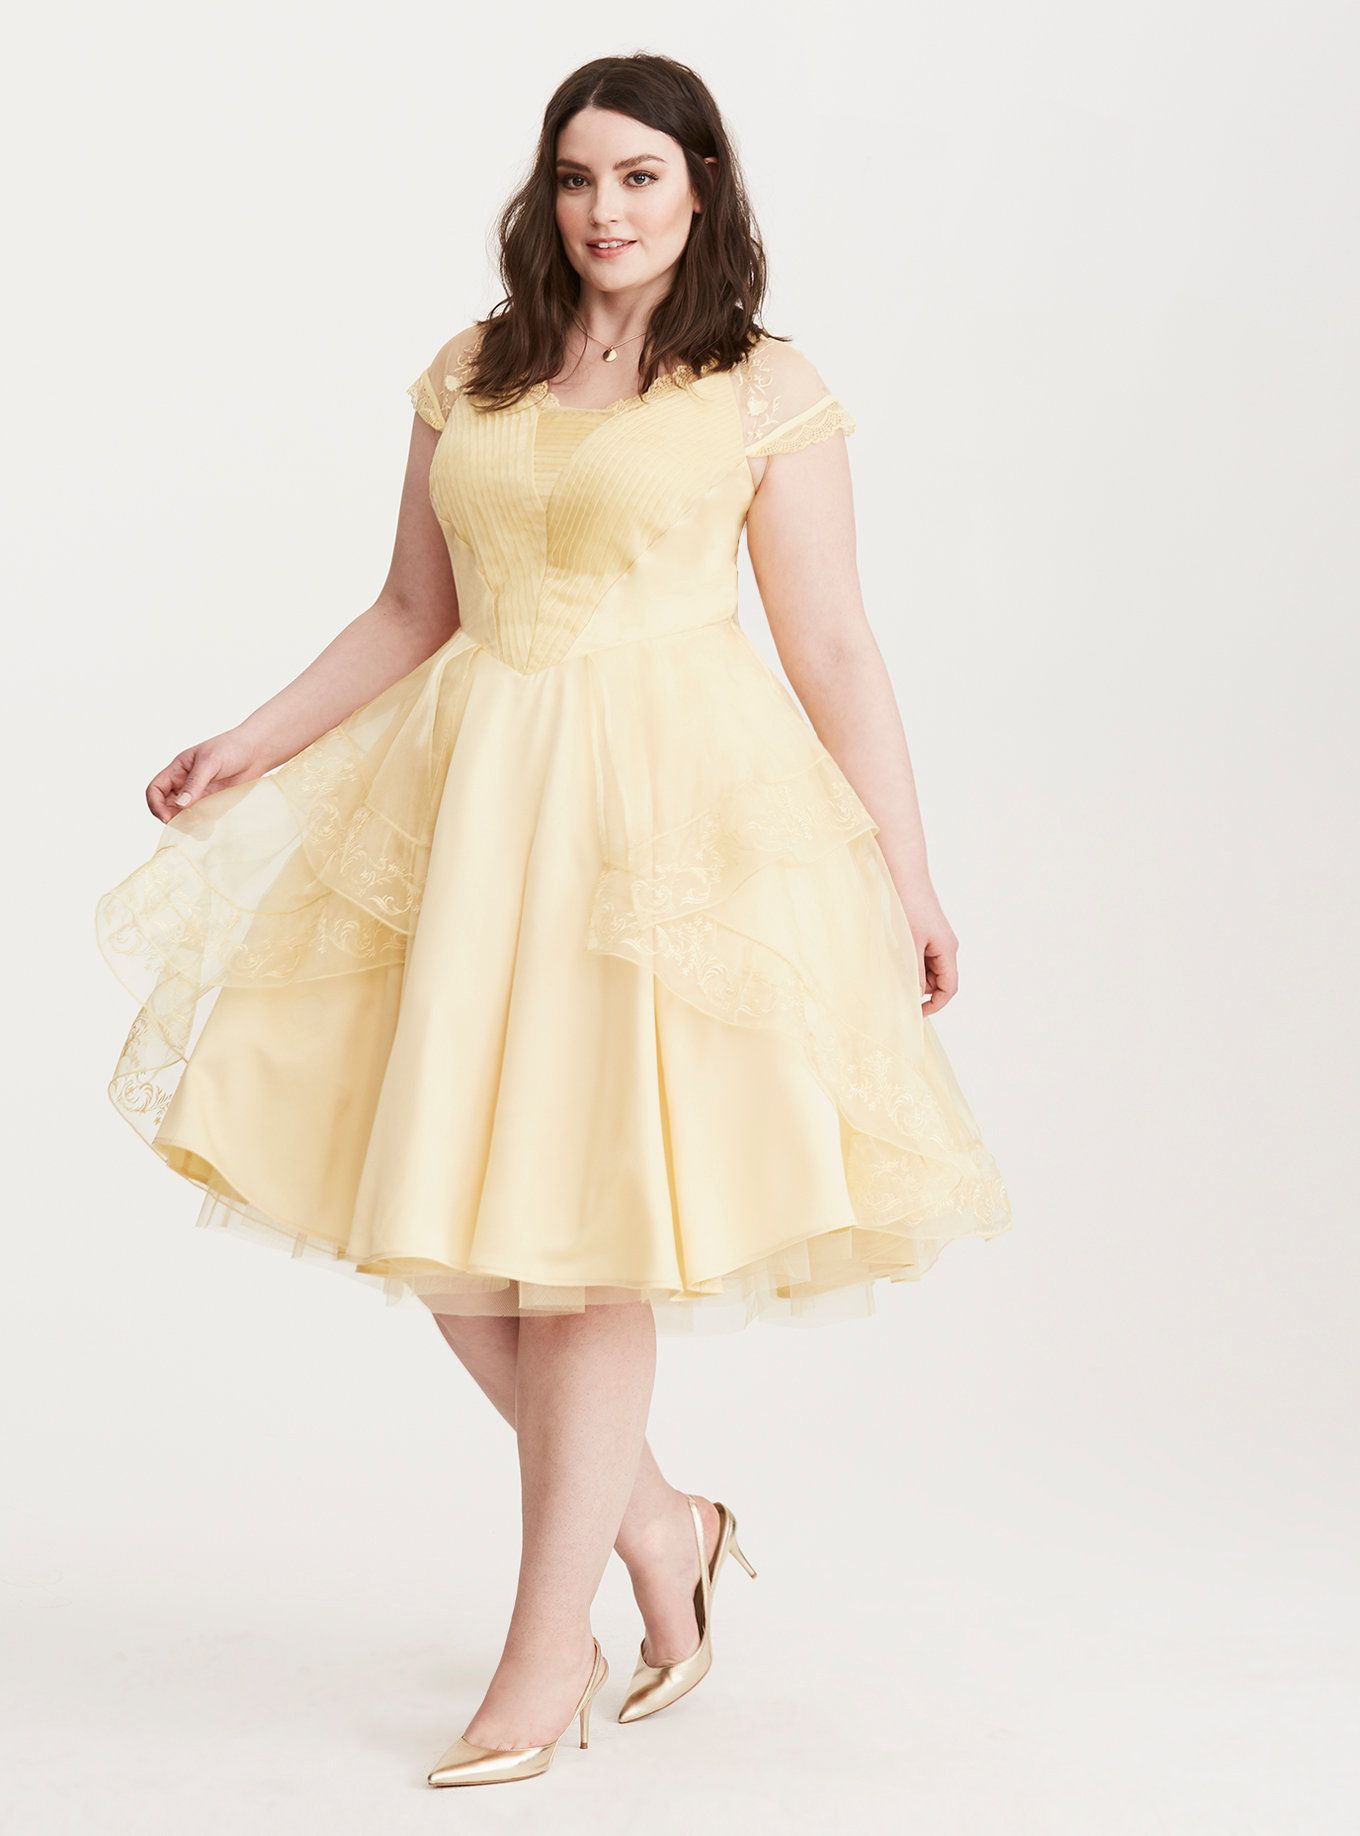 82ffc0484992 Here it is; it's <i>the </i>dress. The ball gown that every little girl  dreams of wearing, Belle's famous yellow dress comes to life on this midi  length ...